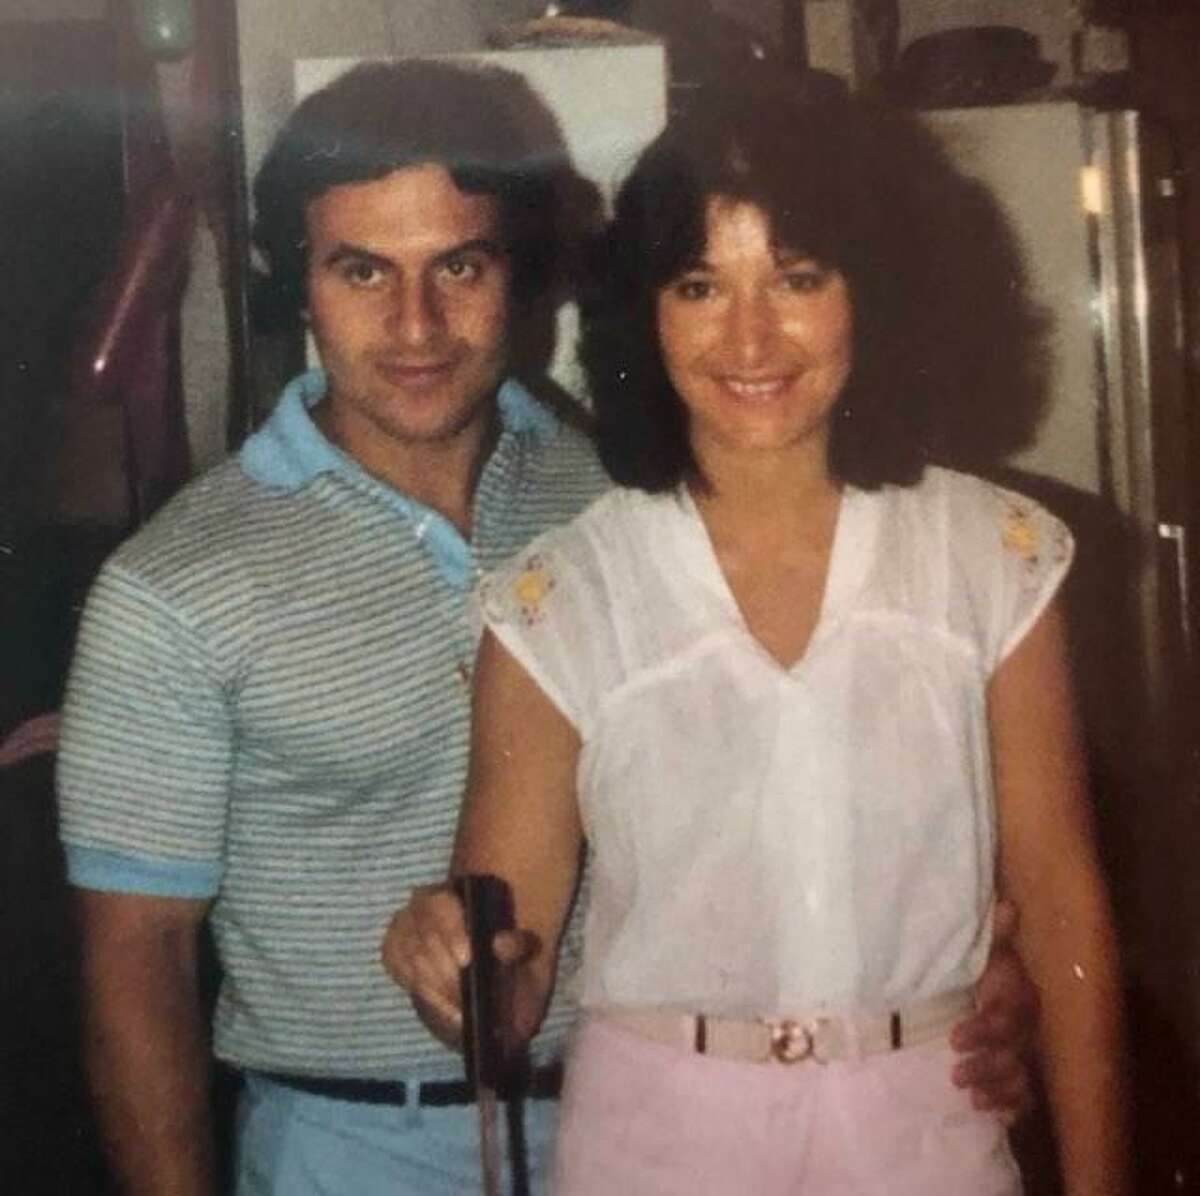 A young Pete and Karen Leonetti had immediate chemistry when they met some 40 years ago while working at a New Haven bar where she was a bartender and he a bouncer.